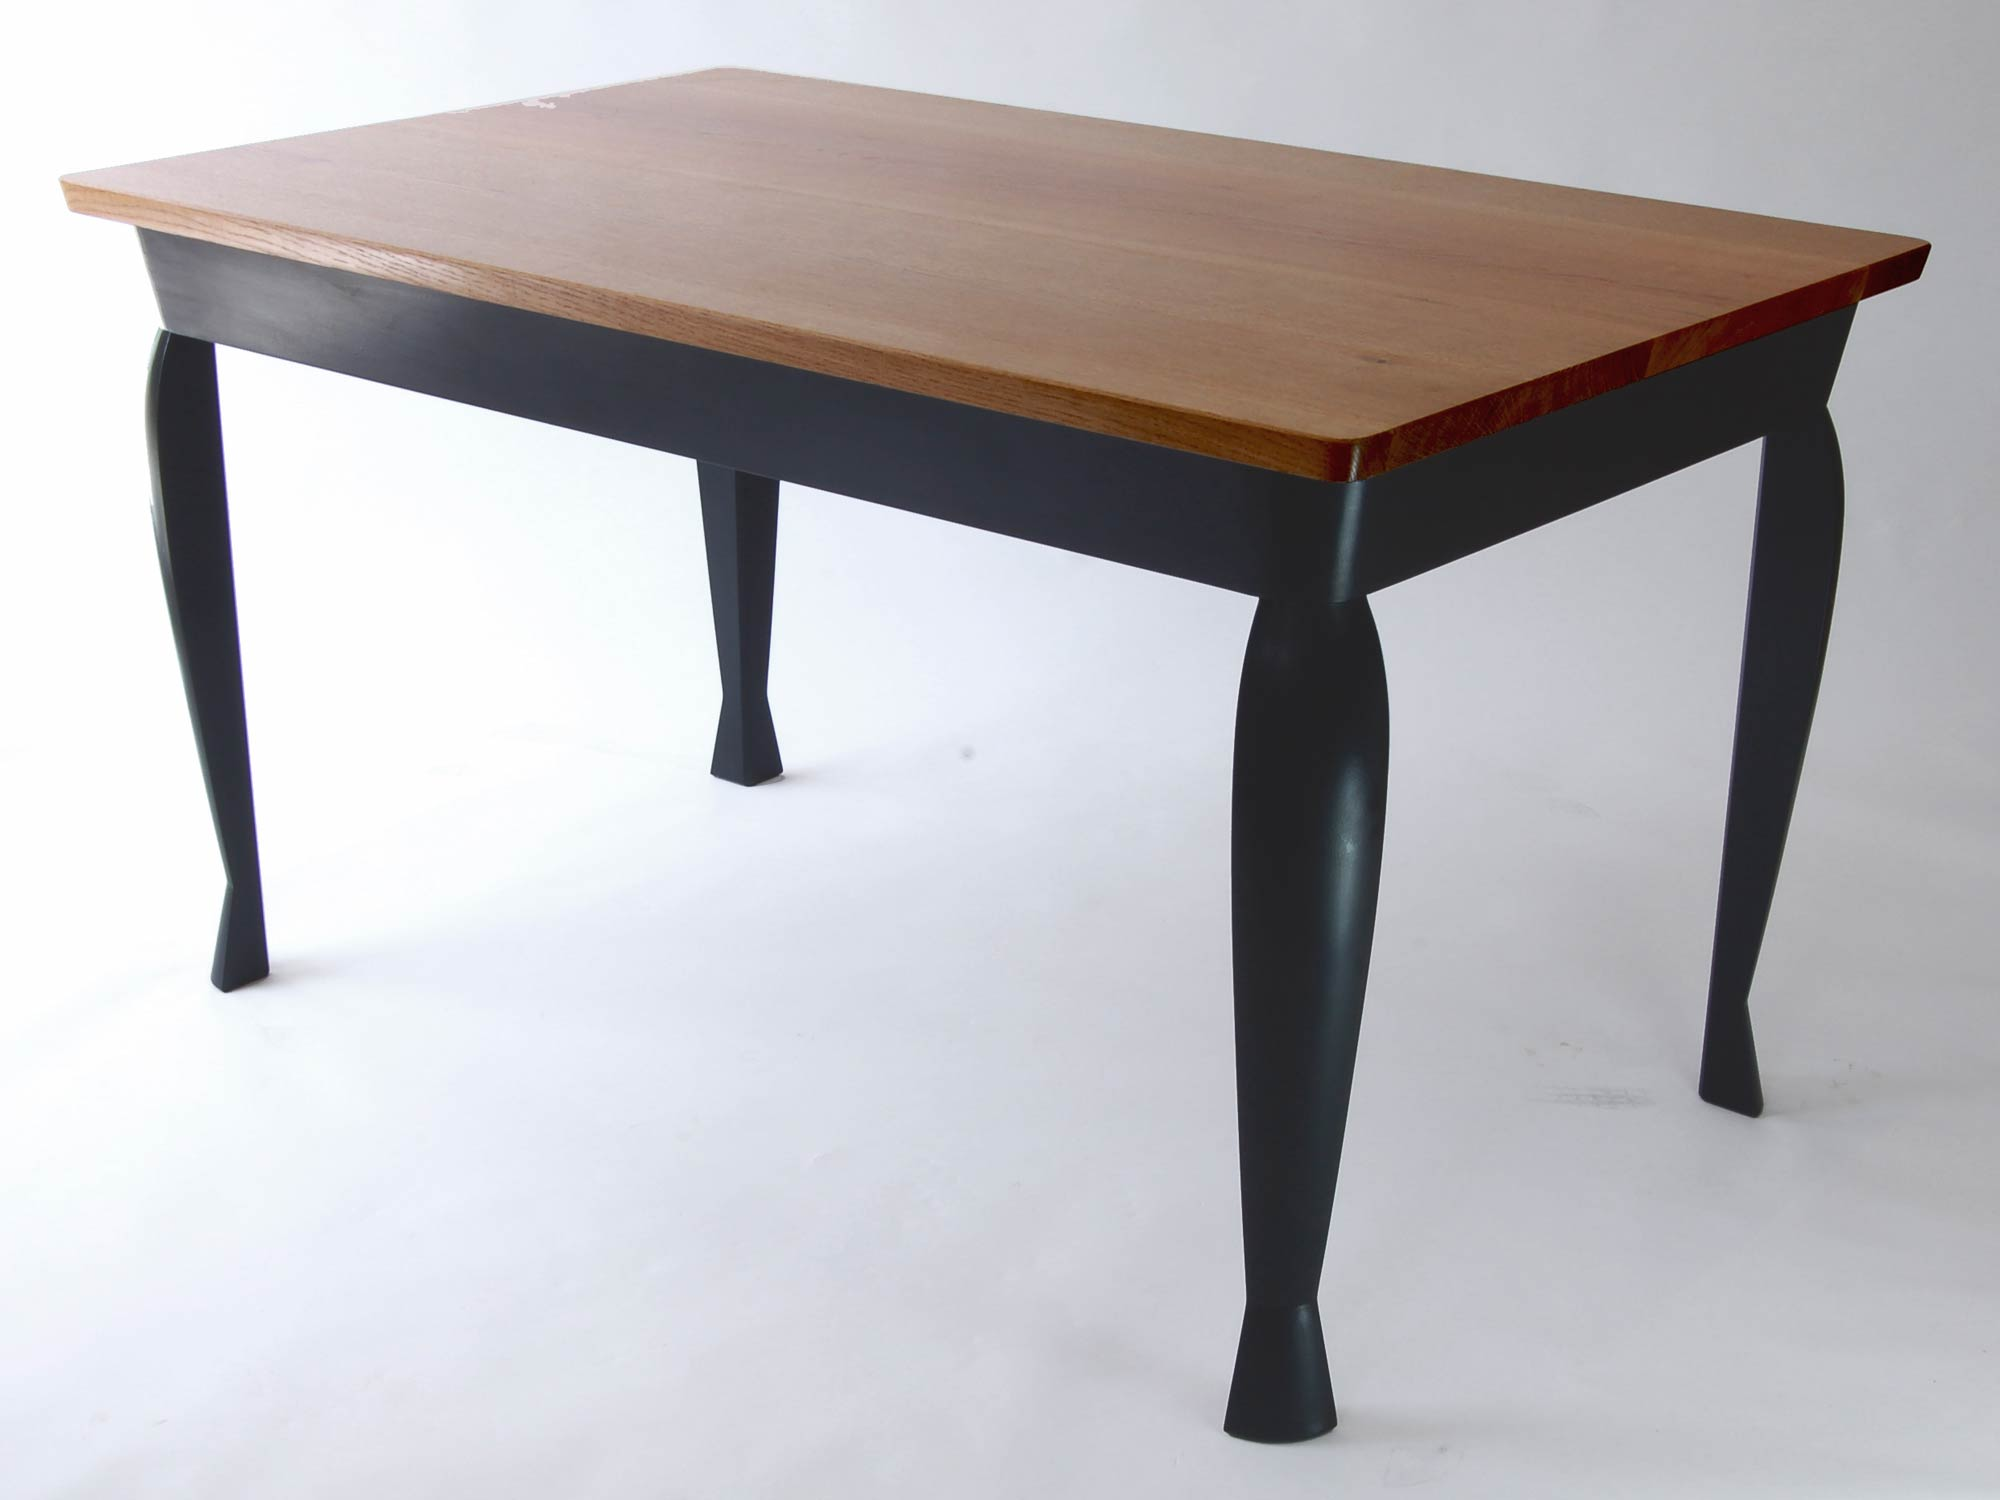 Wood Kitchen Table And Chairs - DIY Woodworking Projects